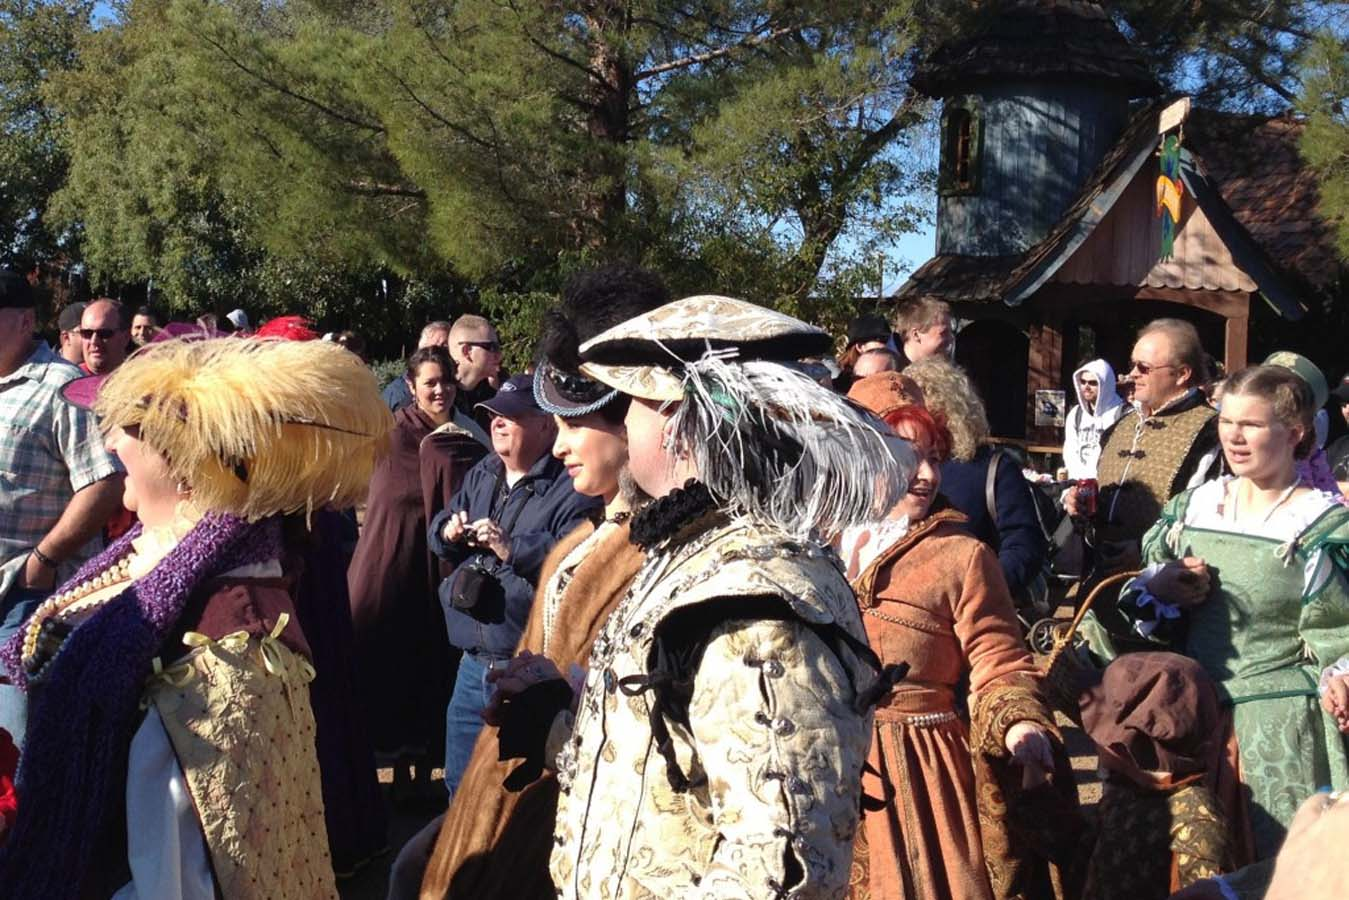 Renaissance Festival outfits with fancy hats